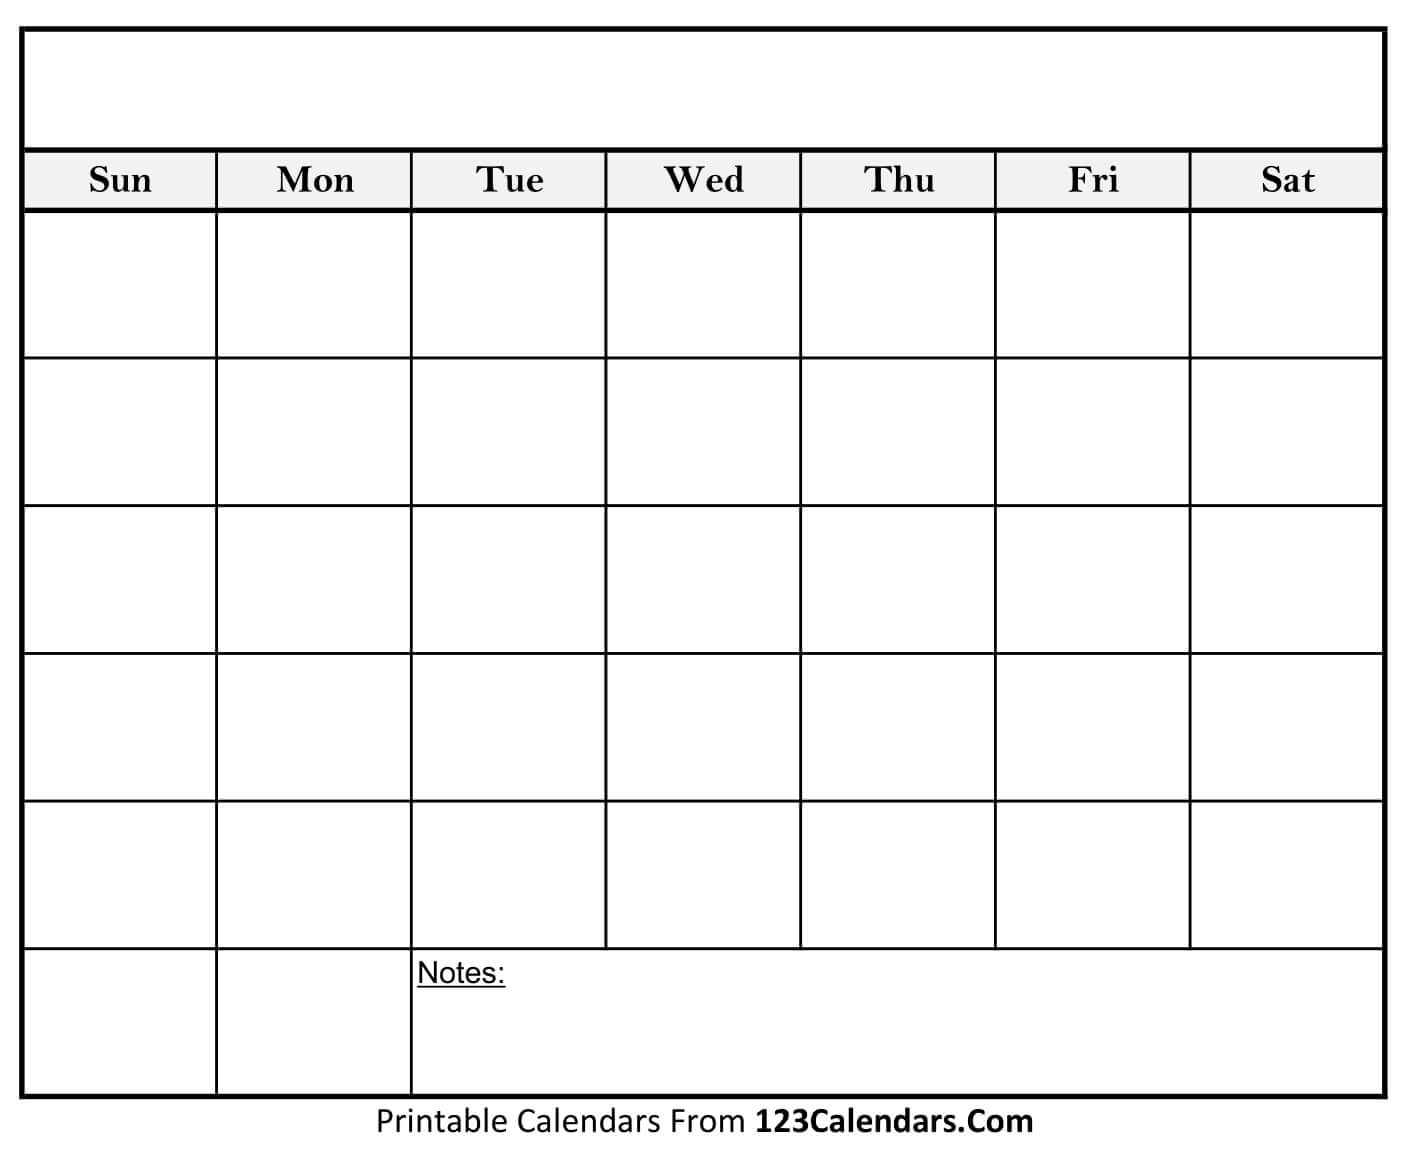 Free Printable Blank Calendar | 123Calendars Intended For Blank Calender Template